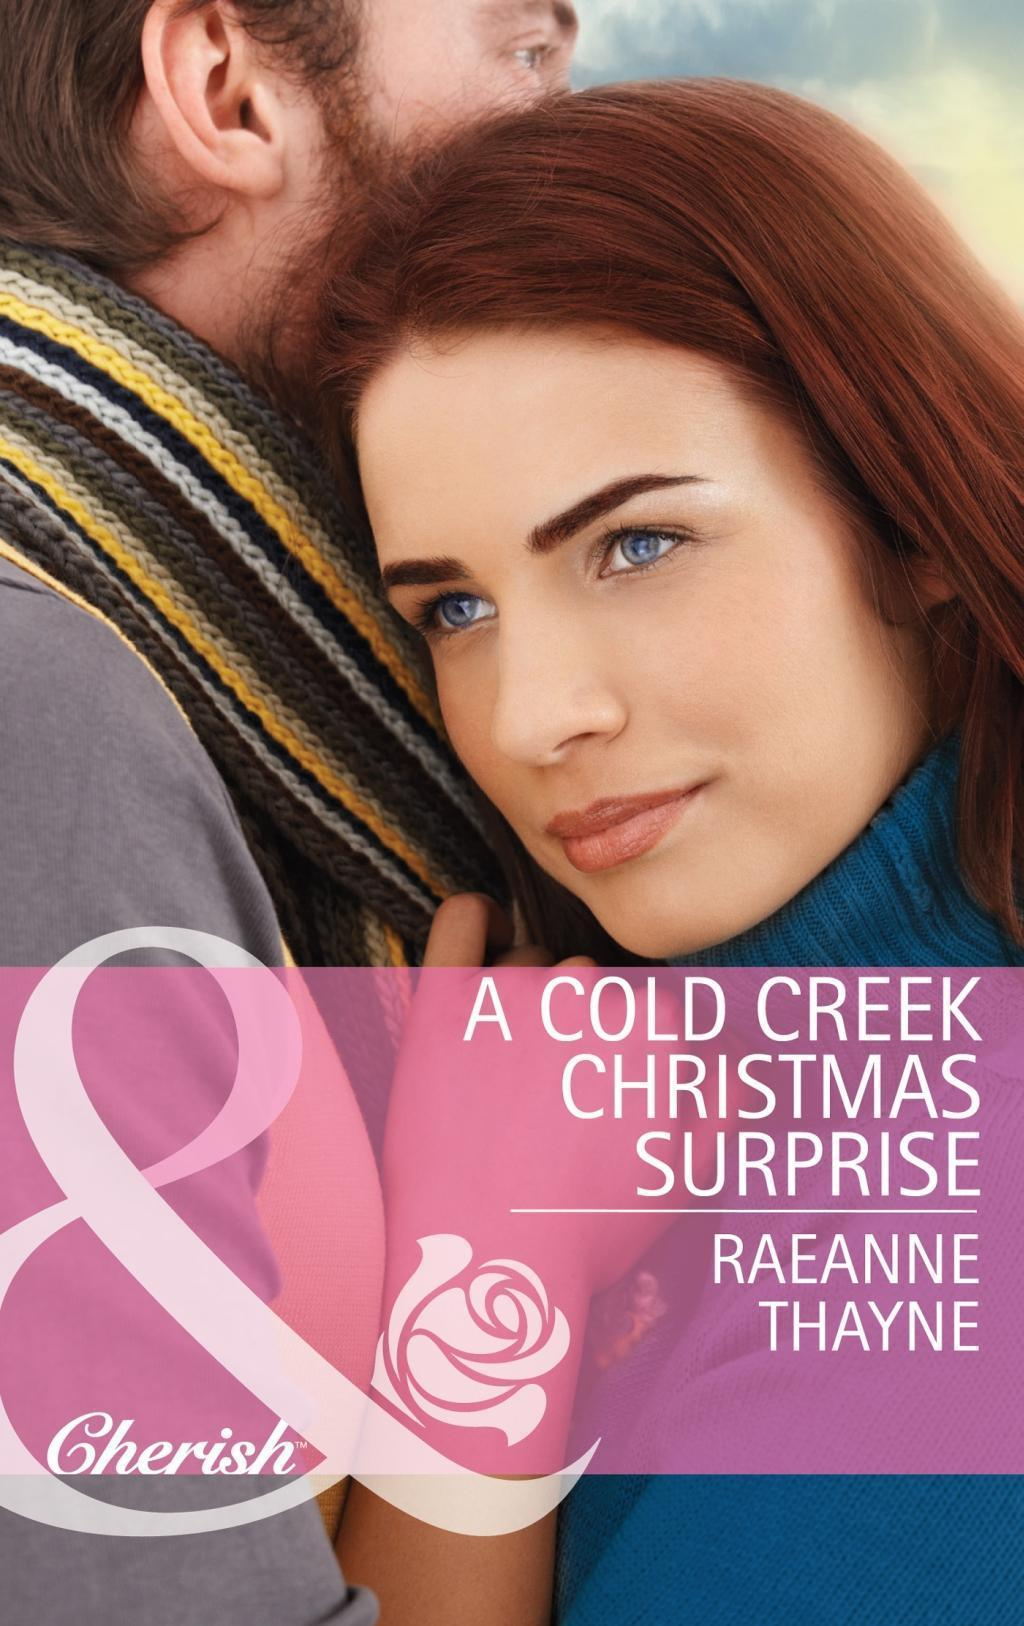 A Cold Creek Christmas Surprise (Mills & Boon Cherish) (The Cowboys of Cold Creek, Book 13)